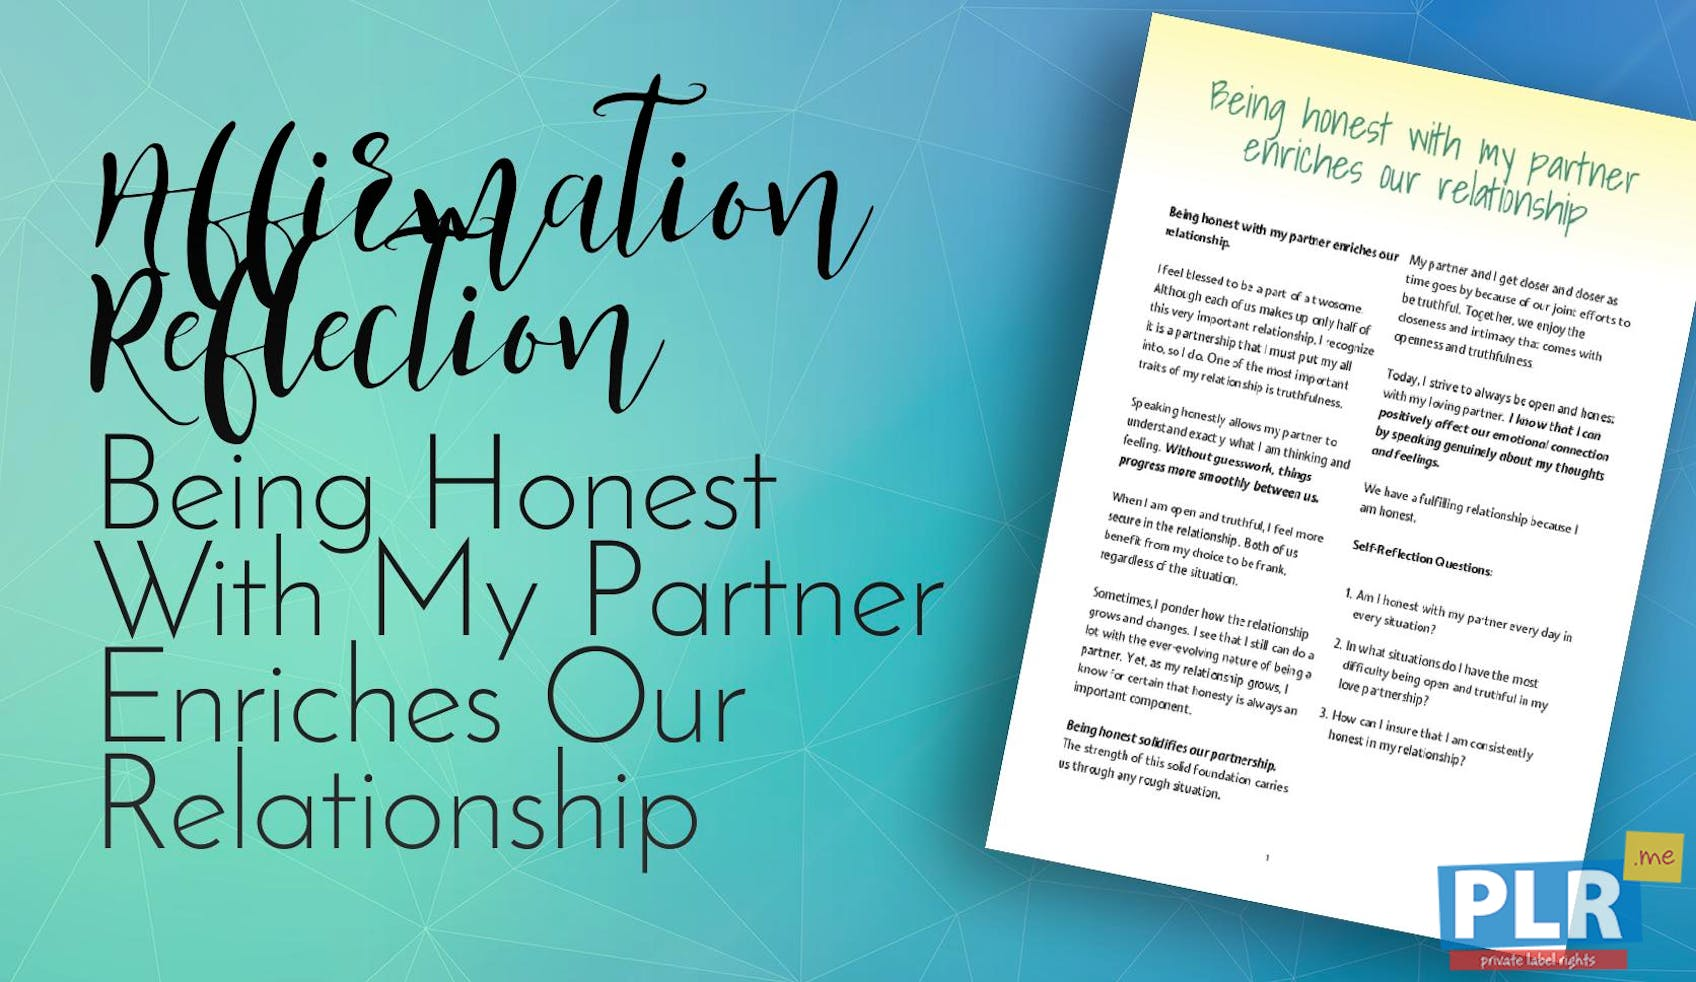 Being Honest With My Partner Enriches Our Relationship